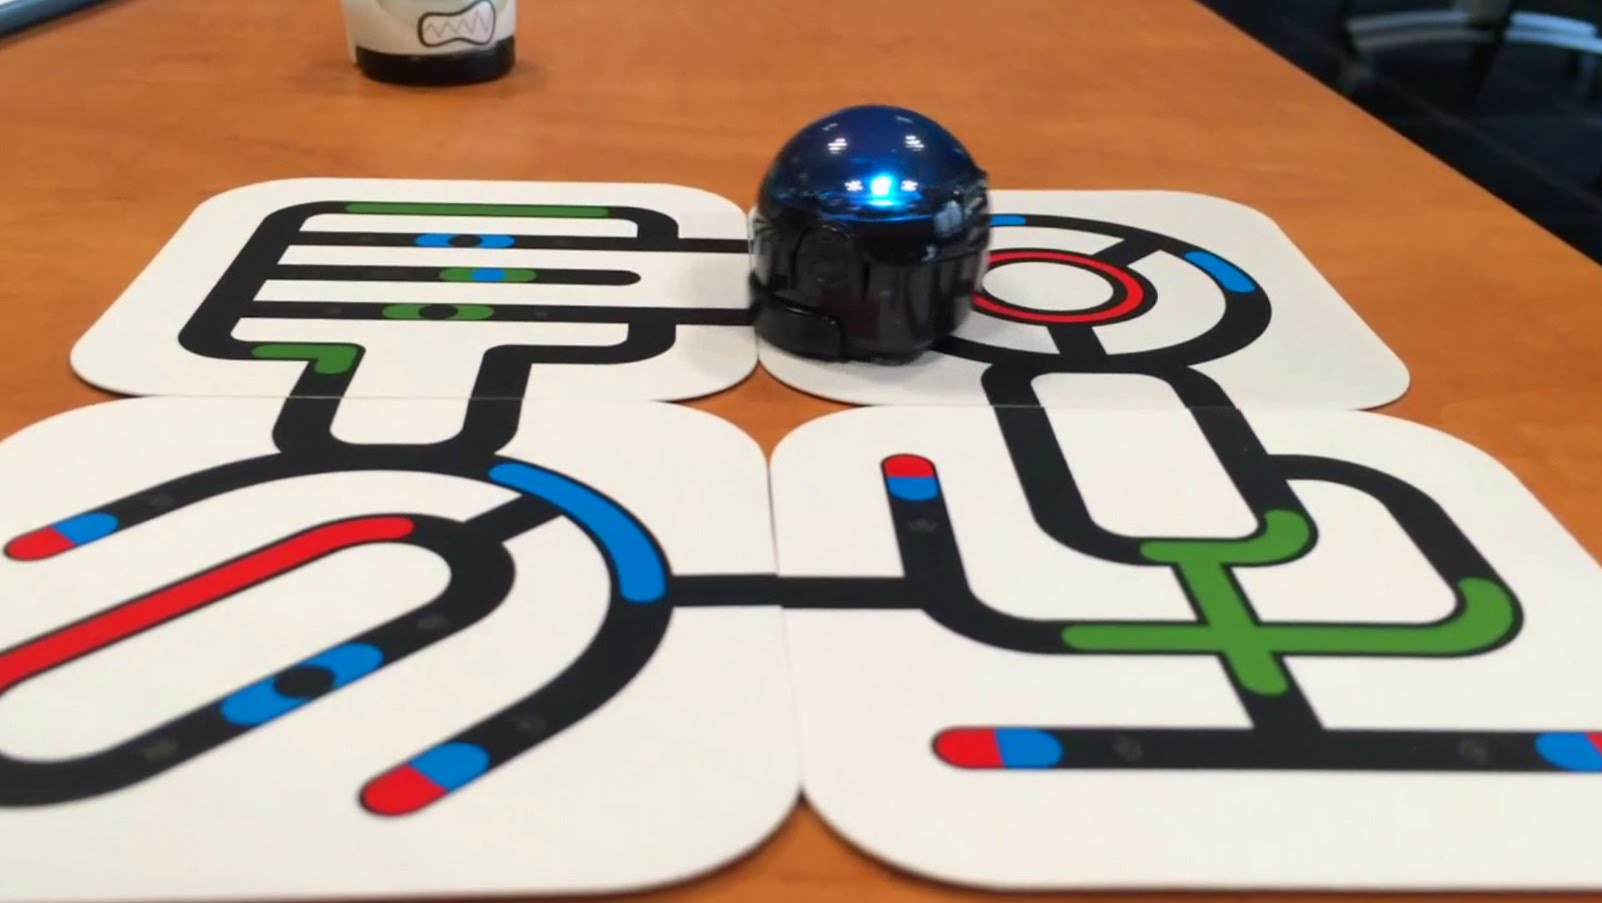 couleurs avec Ozobot Evo